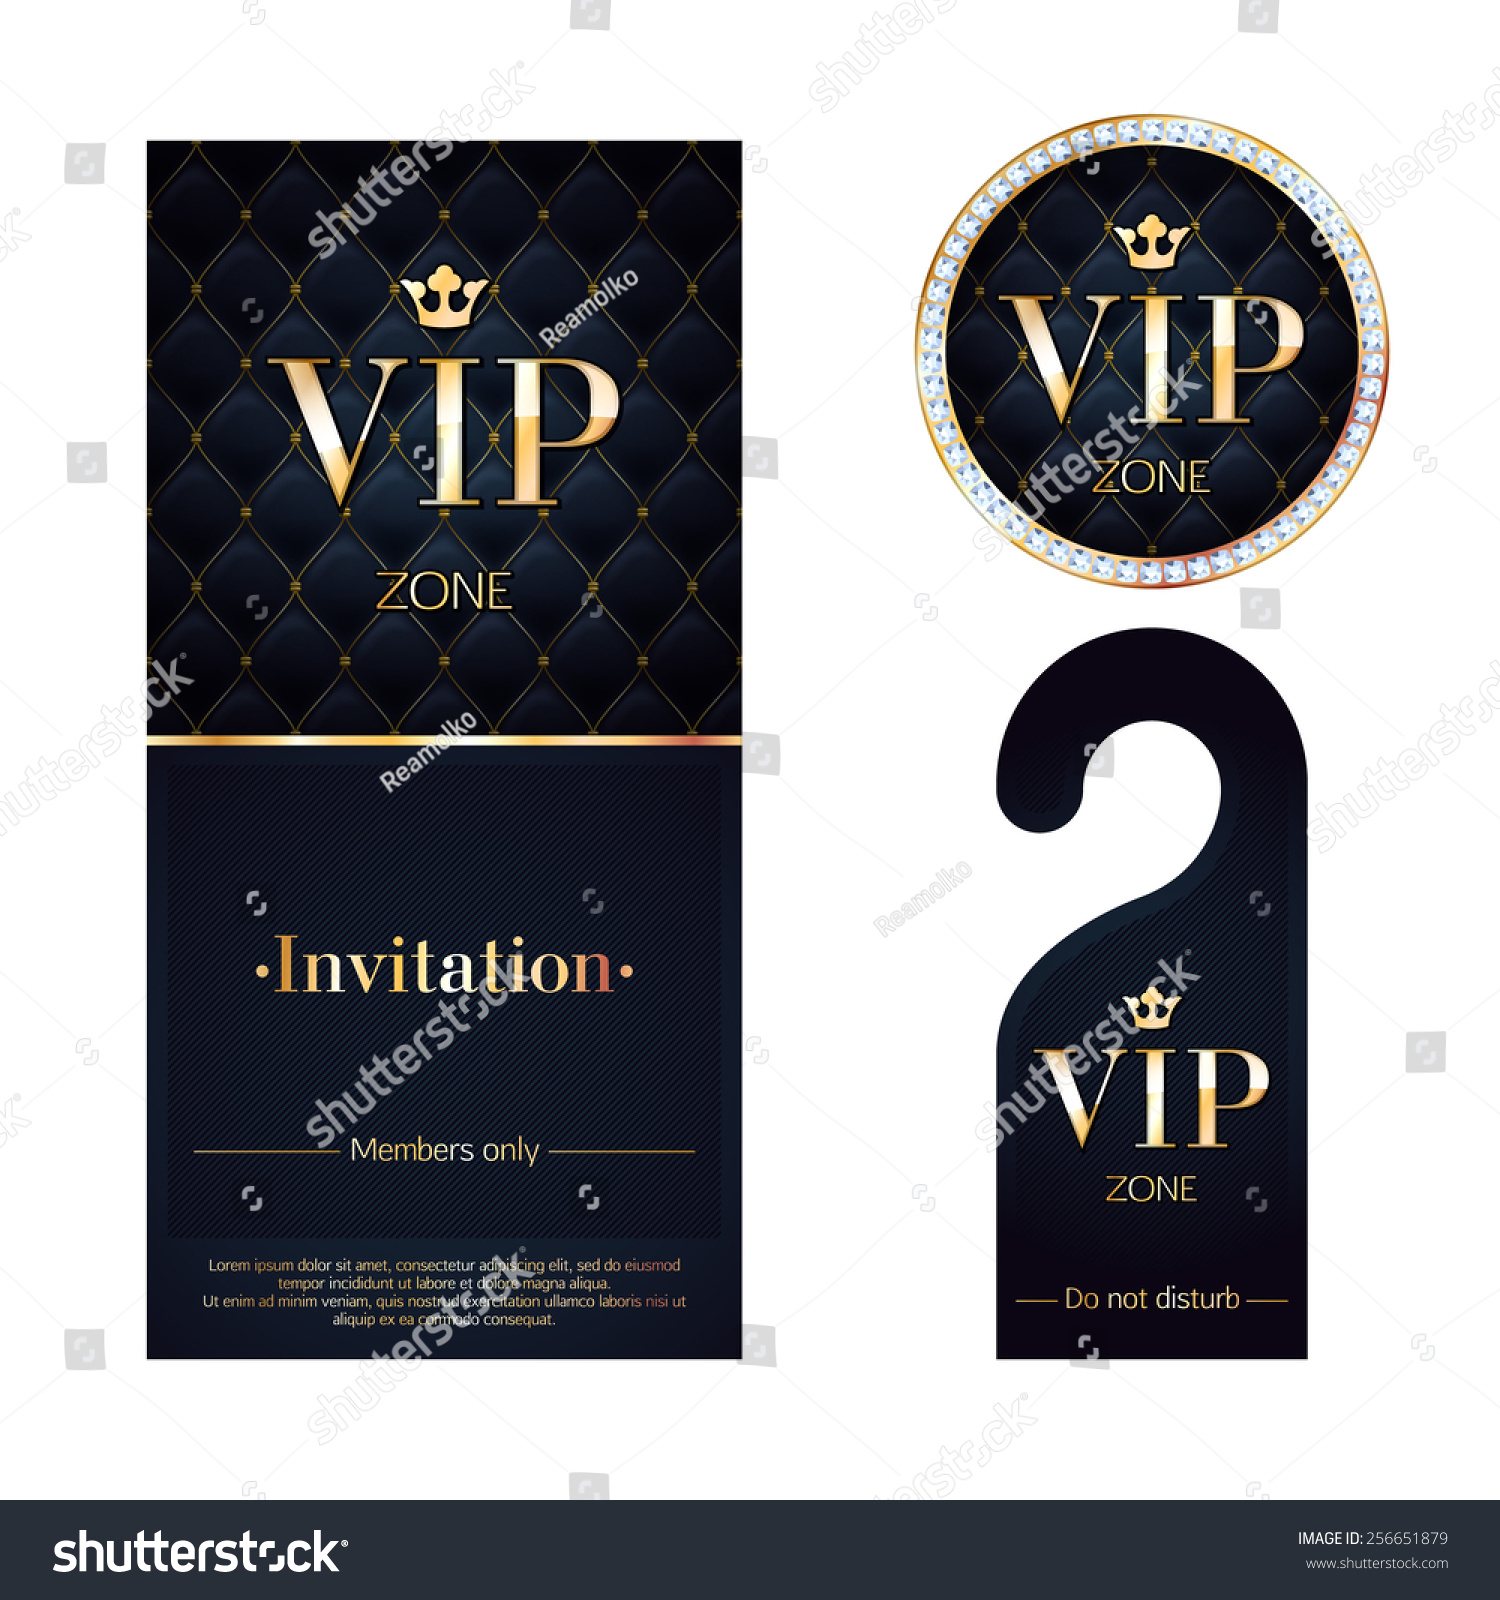 Invitation Vip with beautiful invitations example